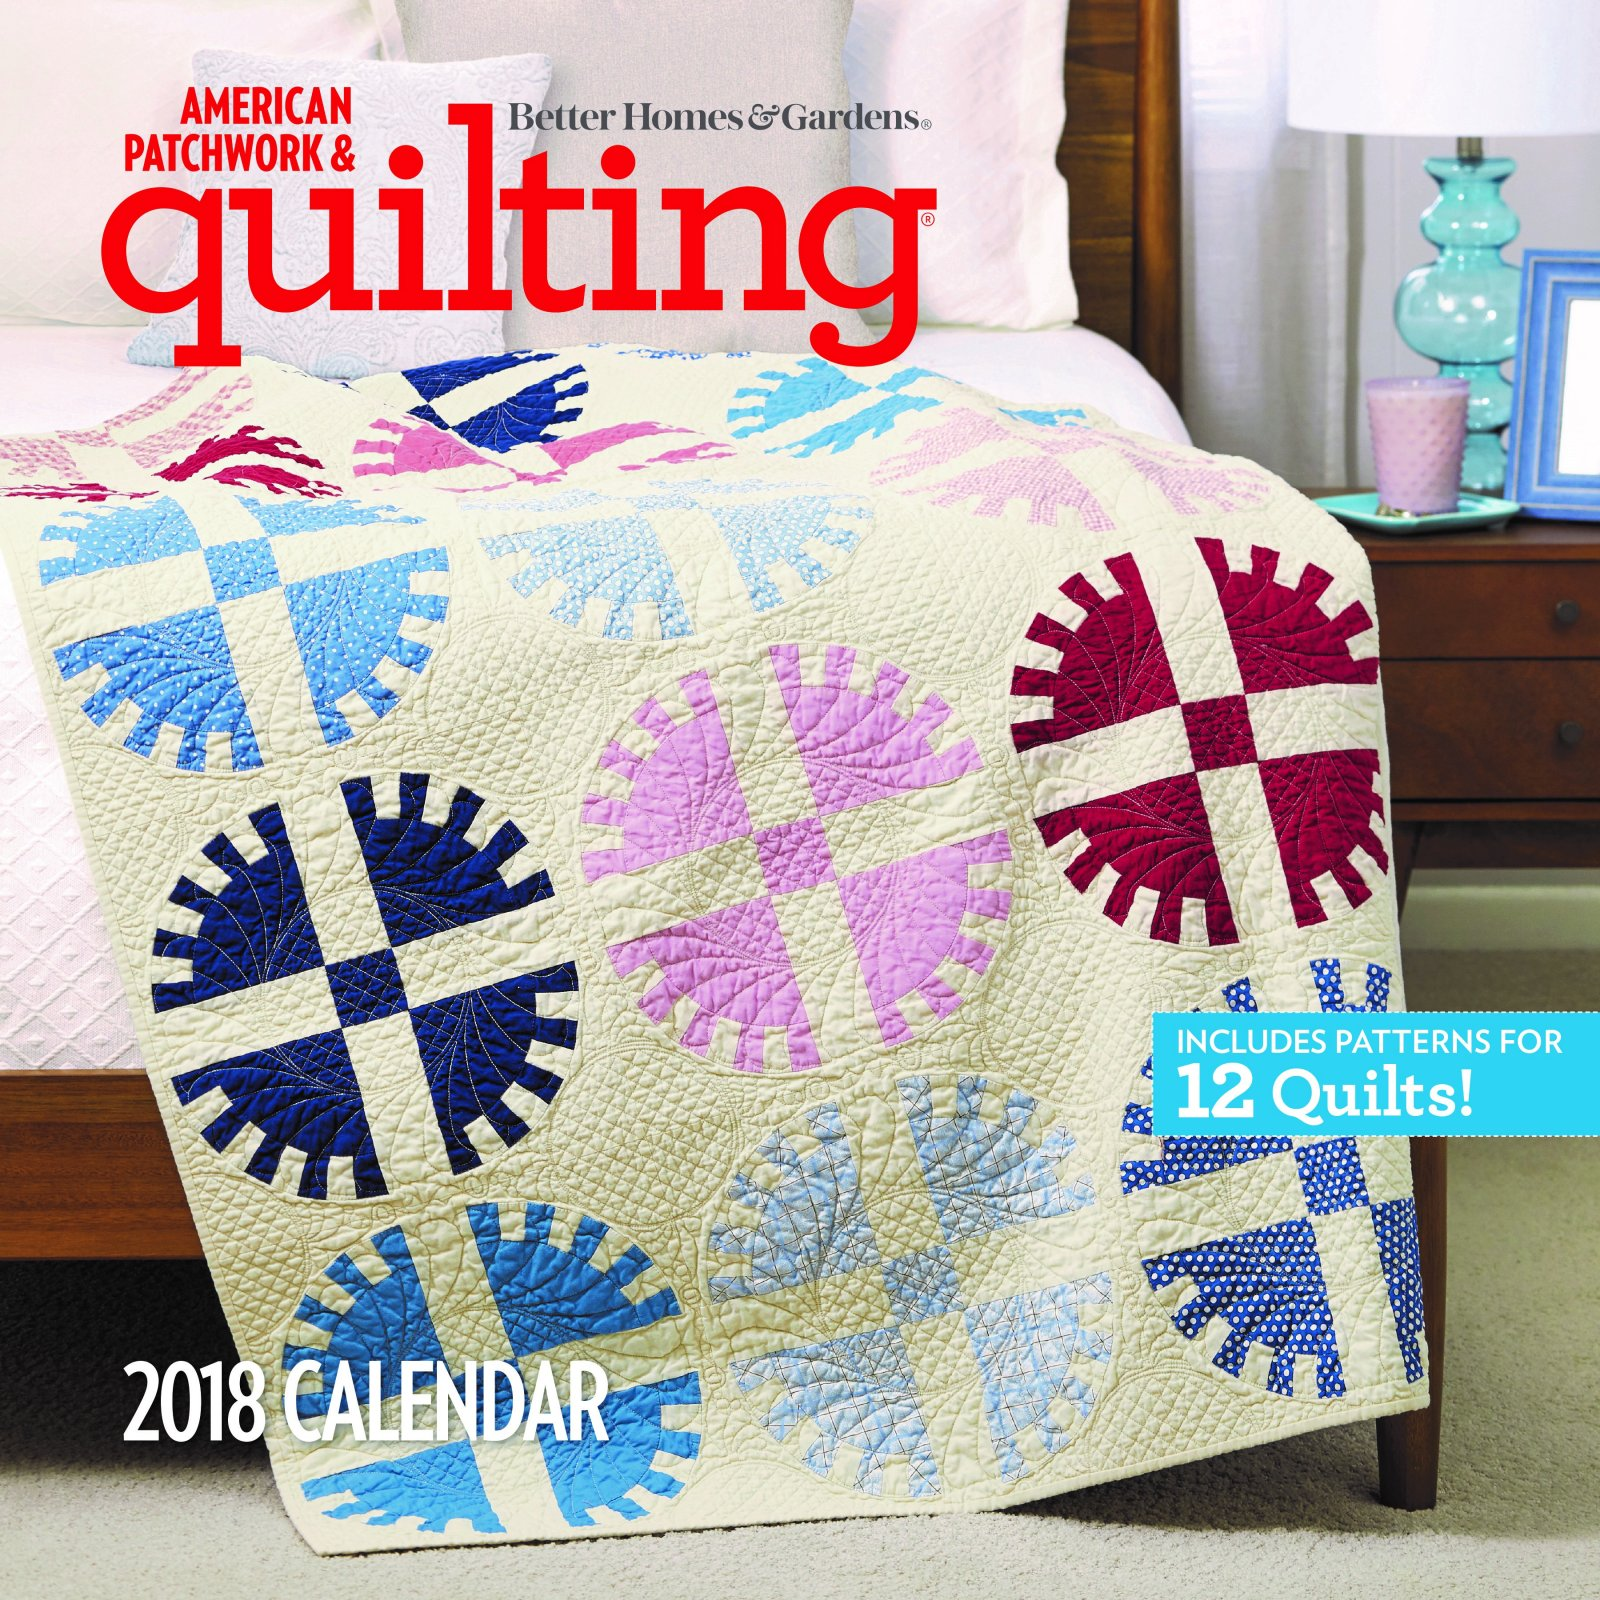 american patchwork malone patterns classic hardcover p and picture by of quilting s maggie quilt